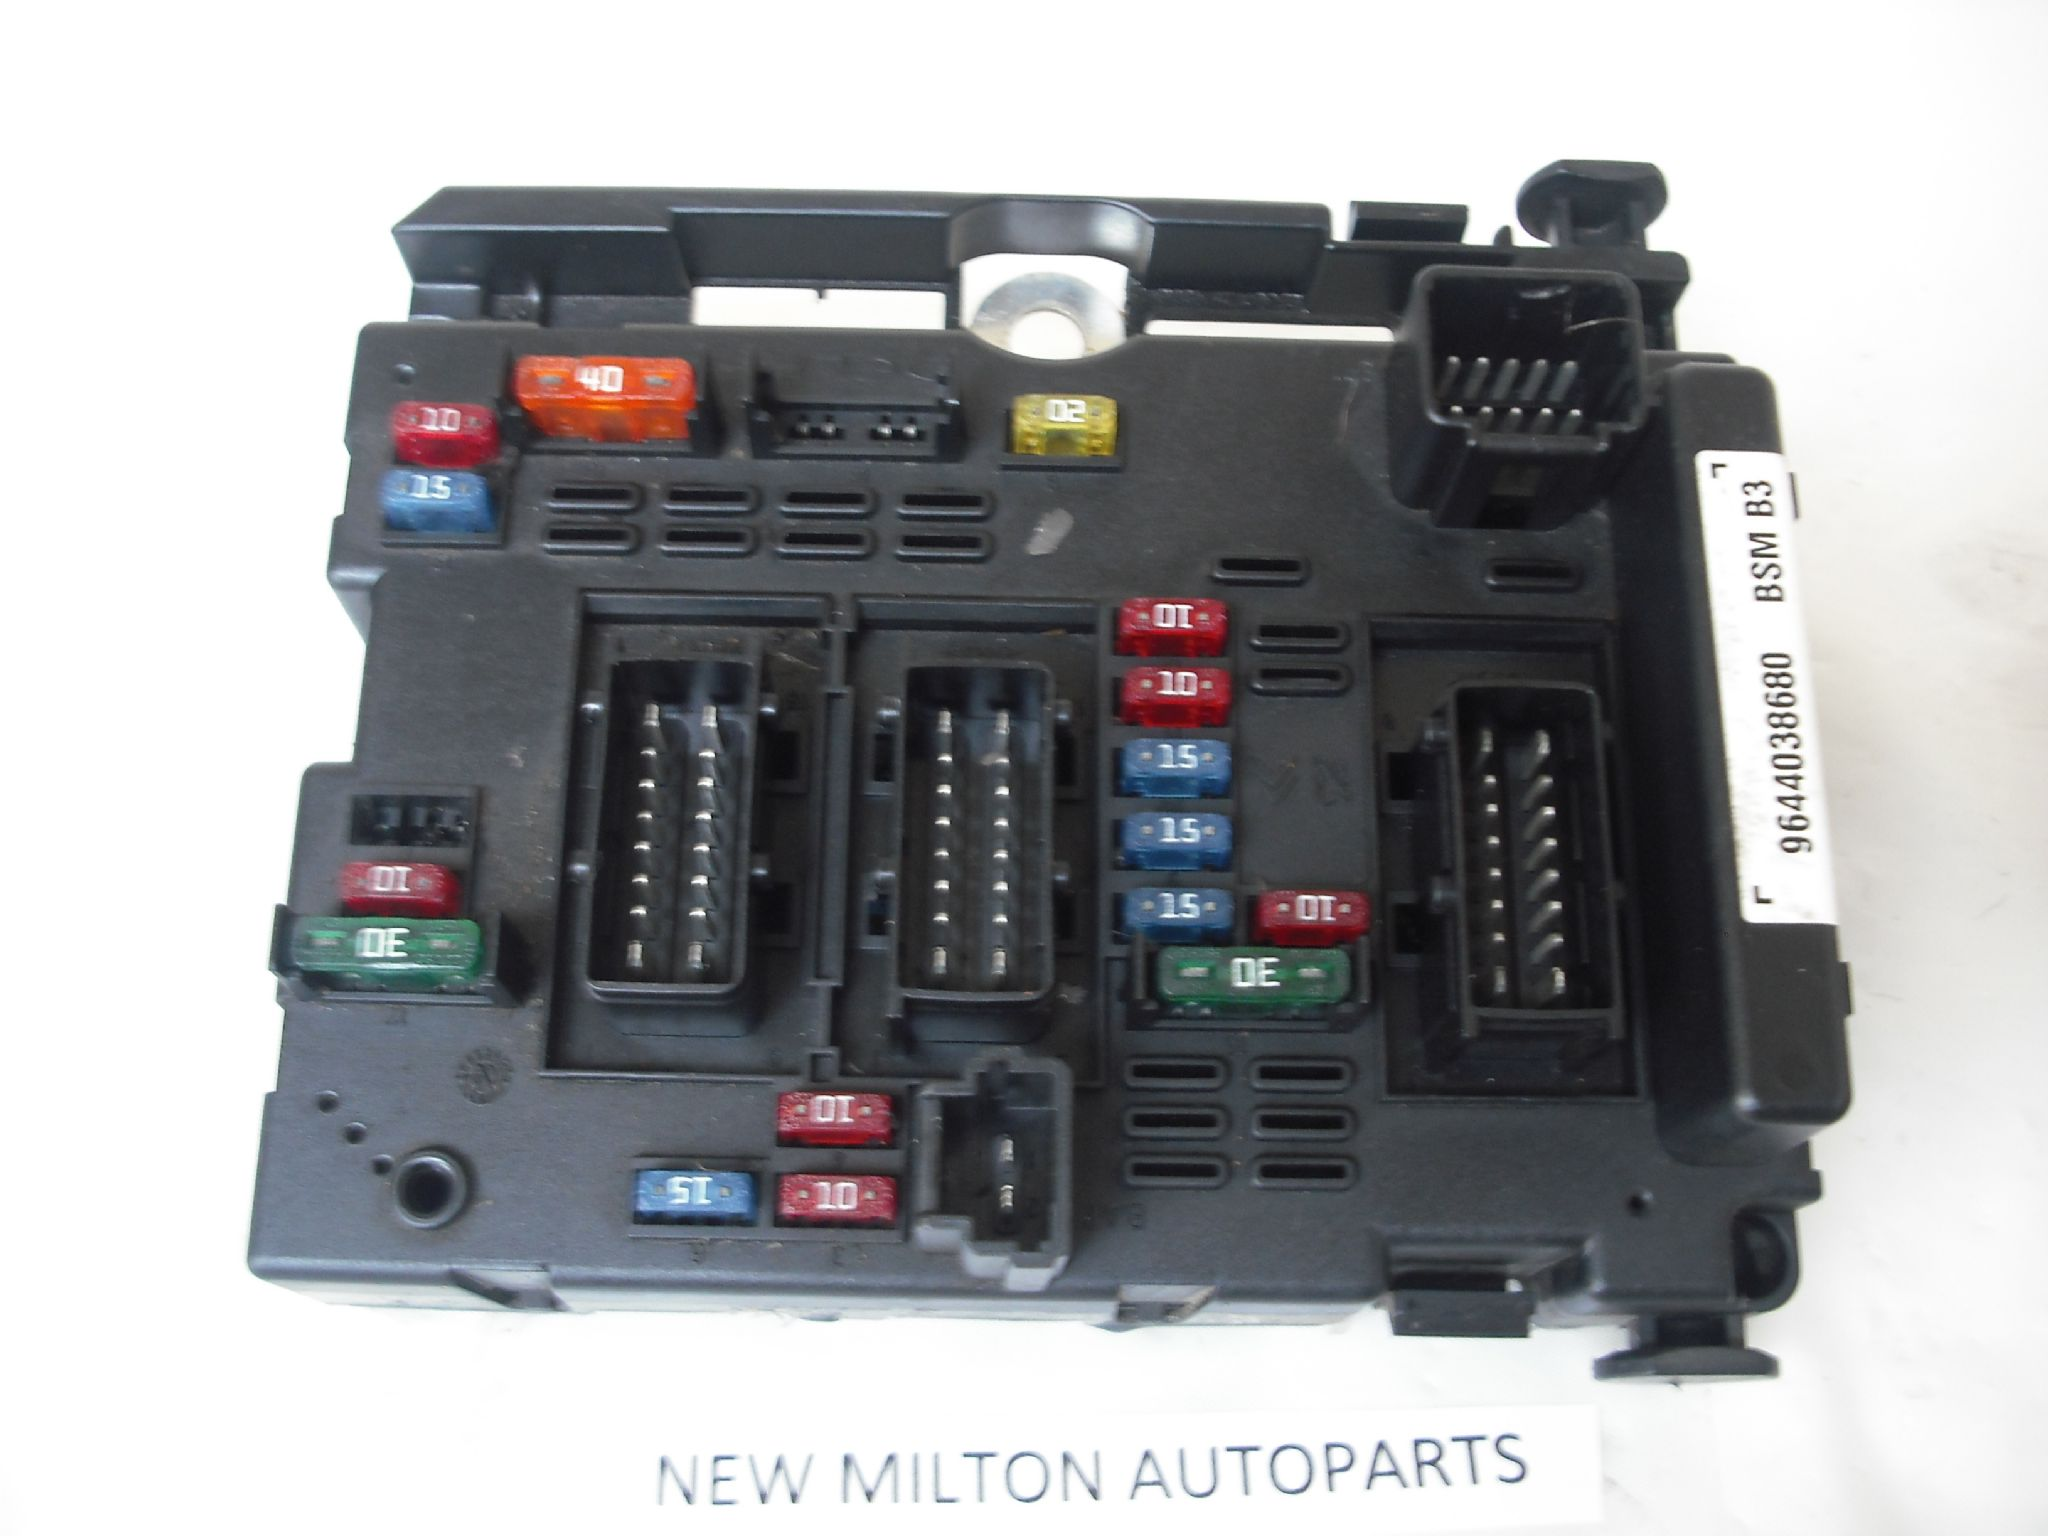 peugeot 307 partner citroen berlingo fuse box controller 9644038680 bsm b3 ........................sorry out of stock 5843 p peugeot 307 partner citroen berlingo fuse box controller citroen berlingo 2003 fuse box at metegol.co